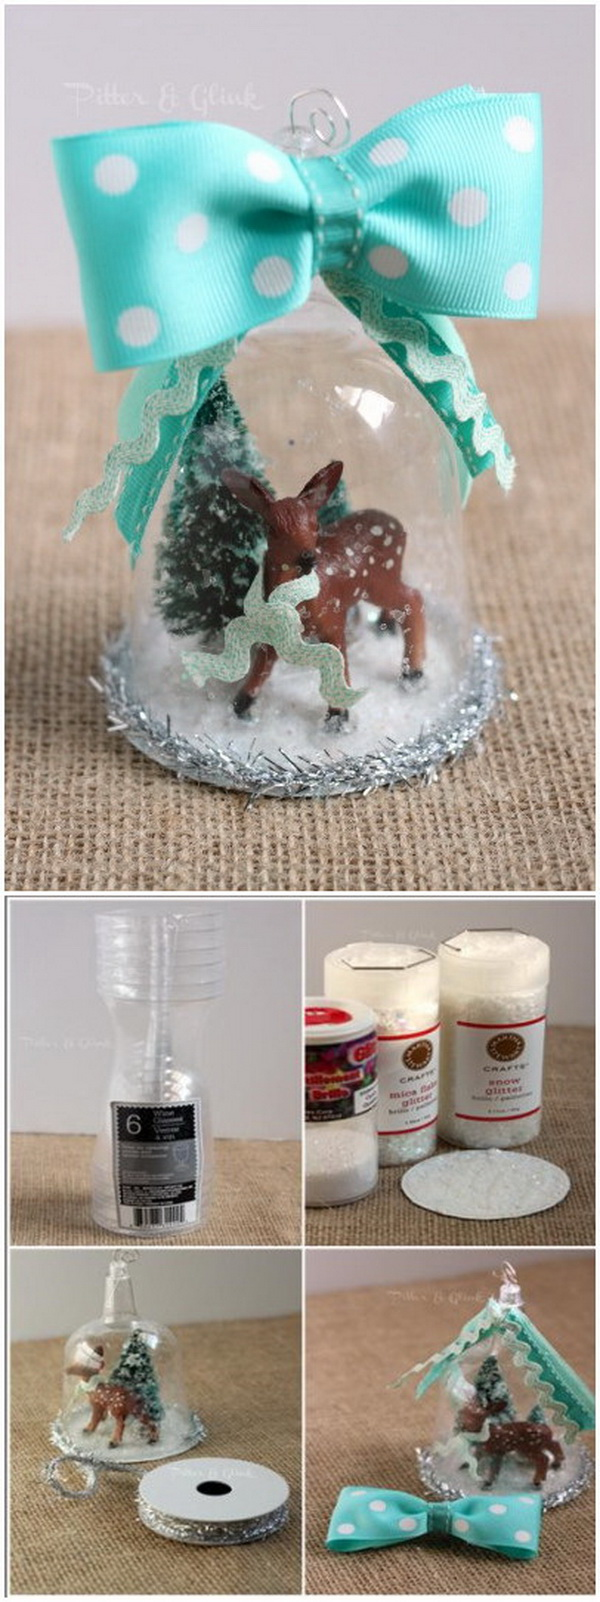 Handmade Deer Snow Globe Ornament. Handmade snow globe ornament made from the plastic wine glasses and decorated with a deer inside and a big bow on top! Easy to make with all materials from dollar store!